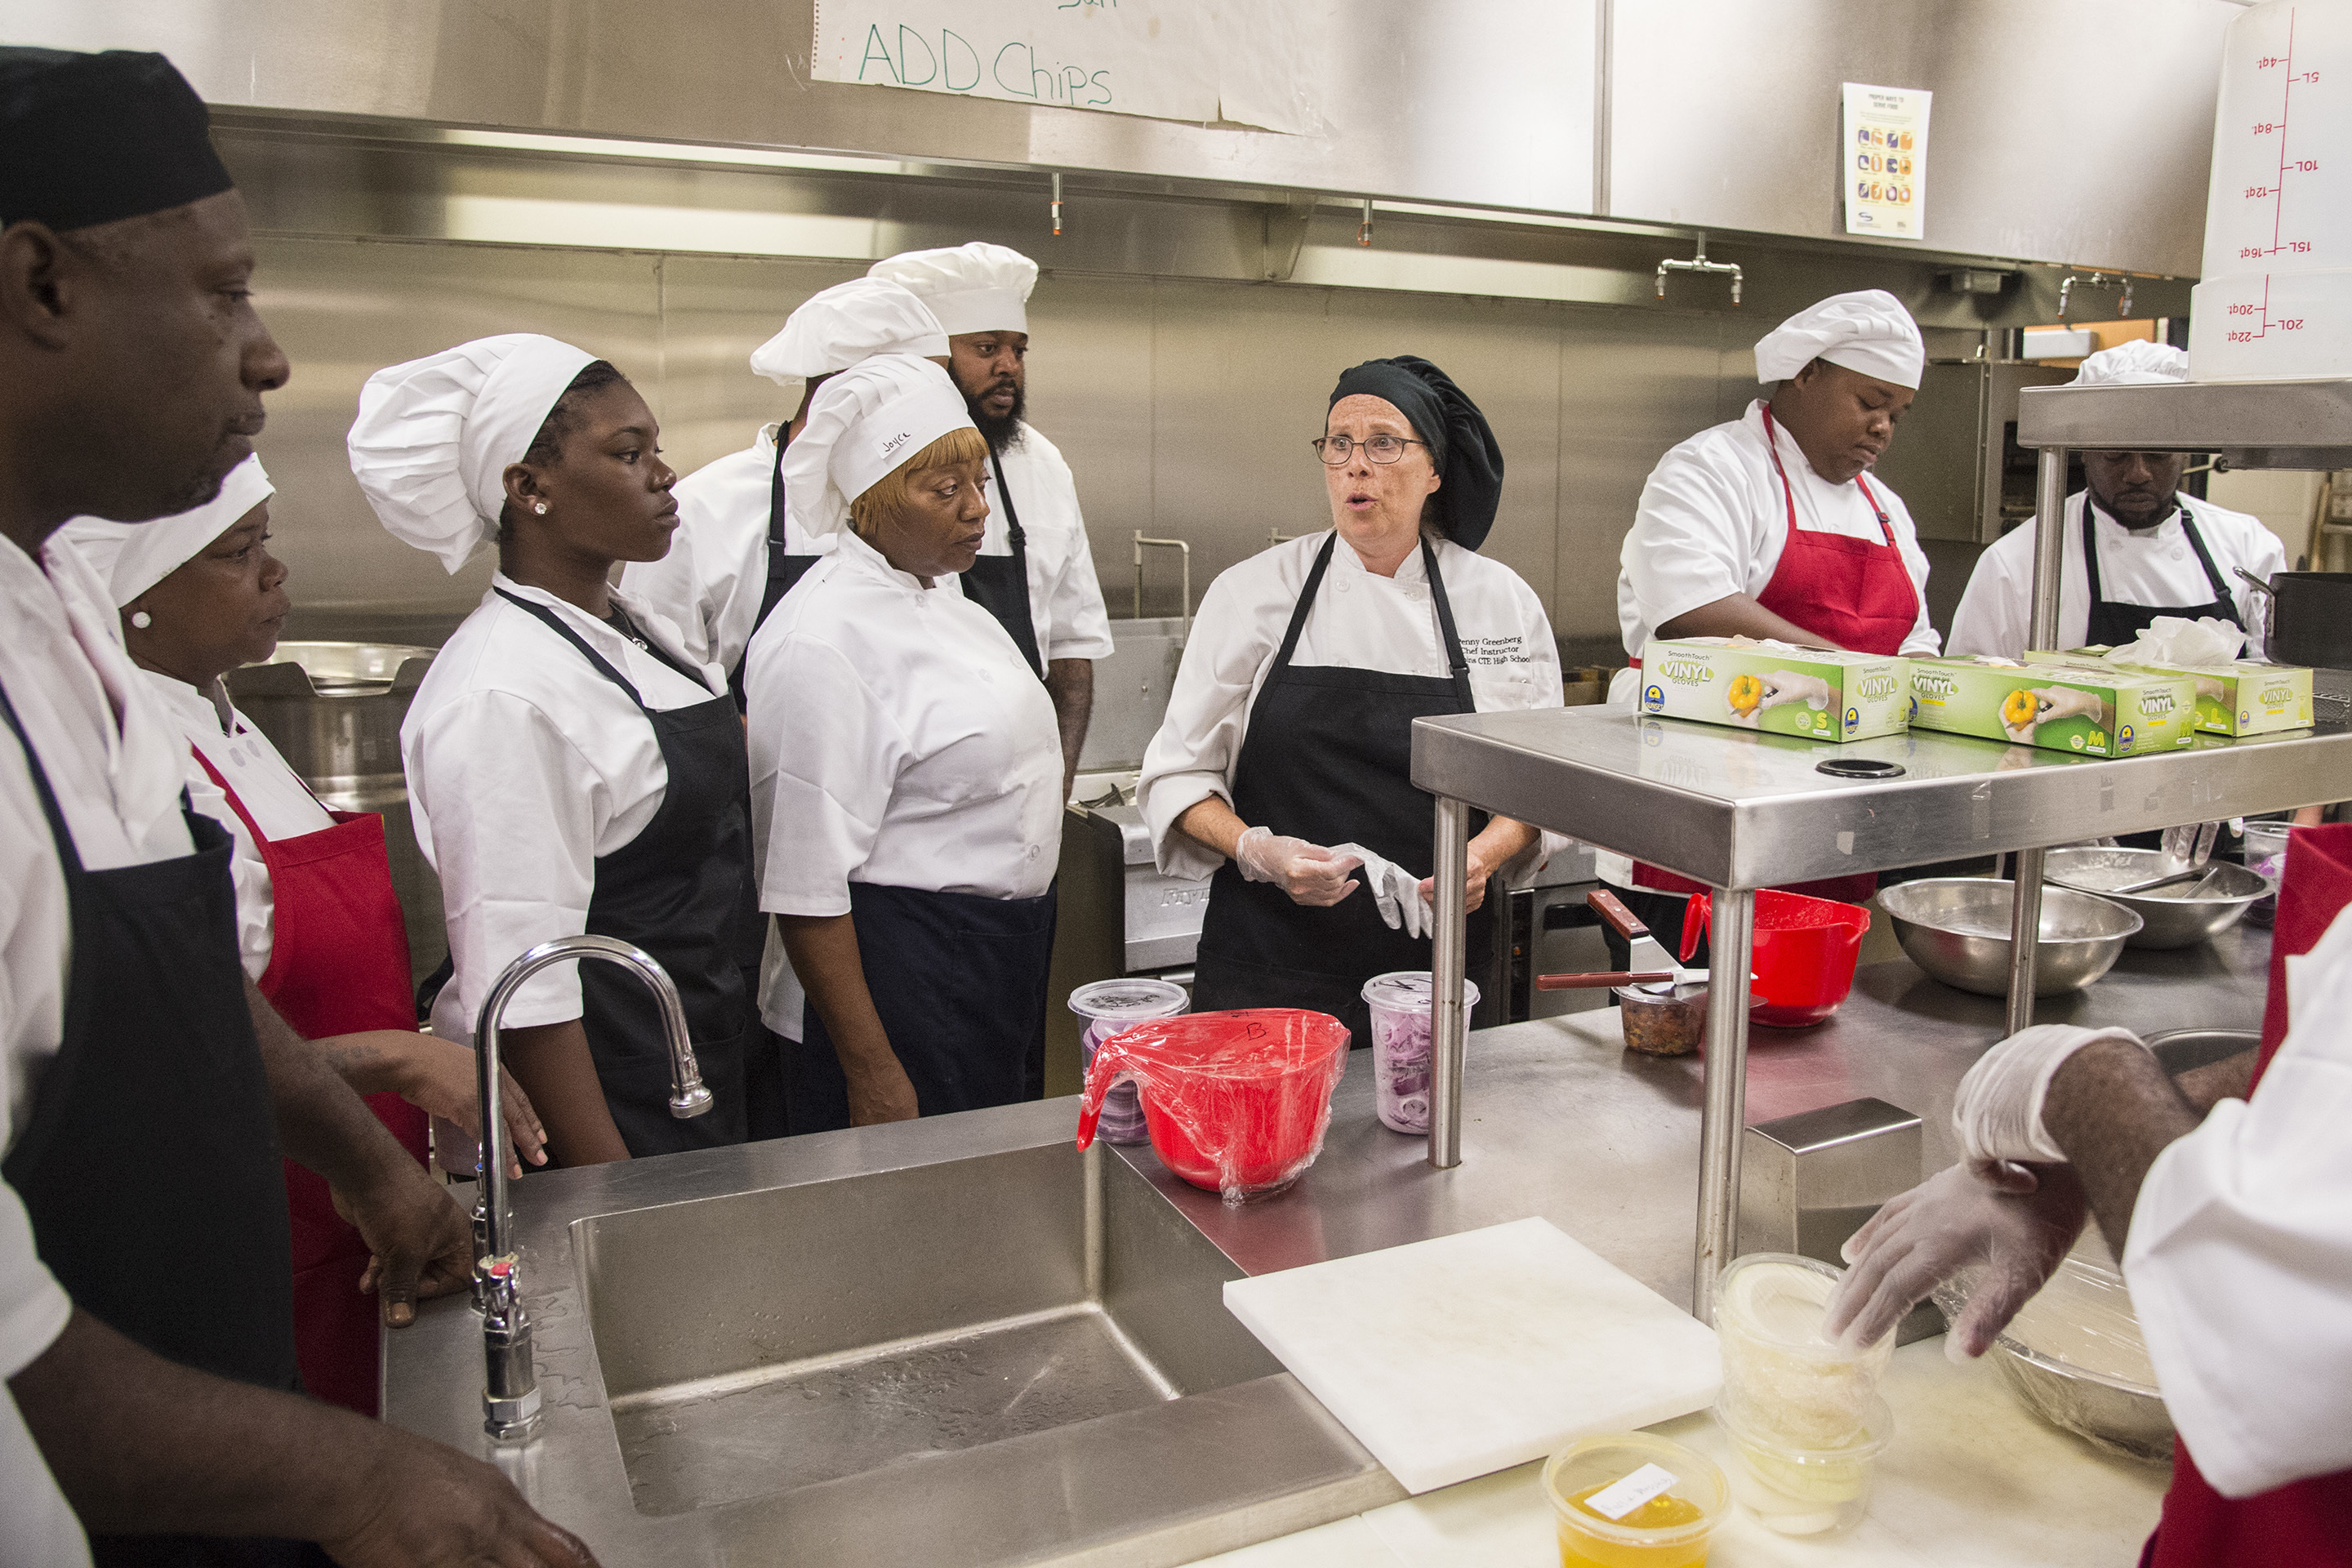 Wearing a black cap, Penny Greenberg, 62, the head of the culinary program at Dobbins Career and Technical Education High School, conducts a training program sponsored by a hospitality union UNITE Here as students gather around the stove. CLEM MURRAY / Staff Photographer